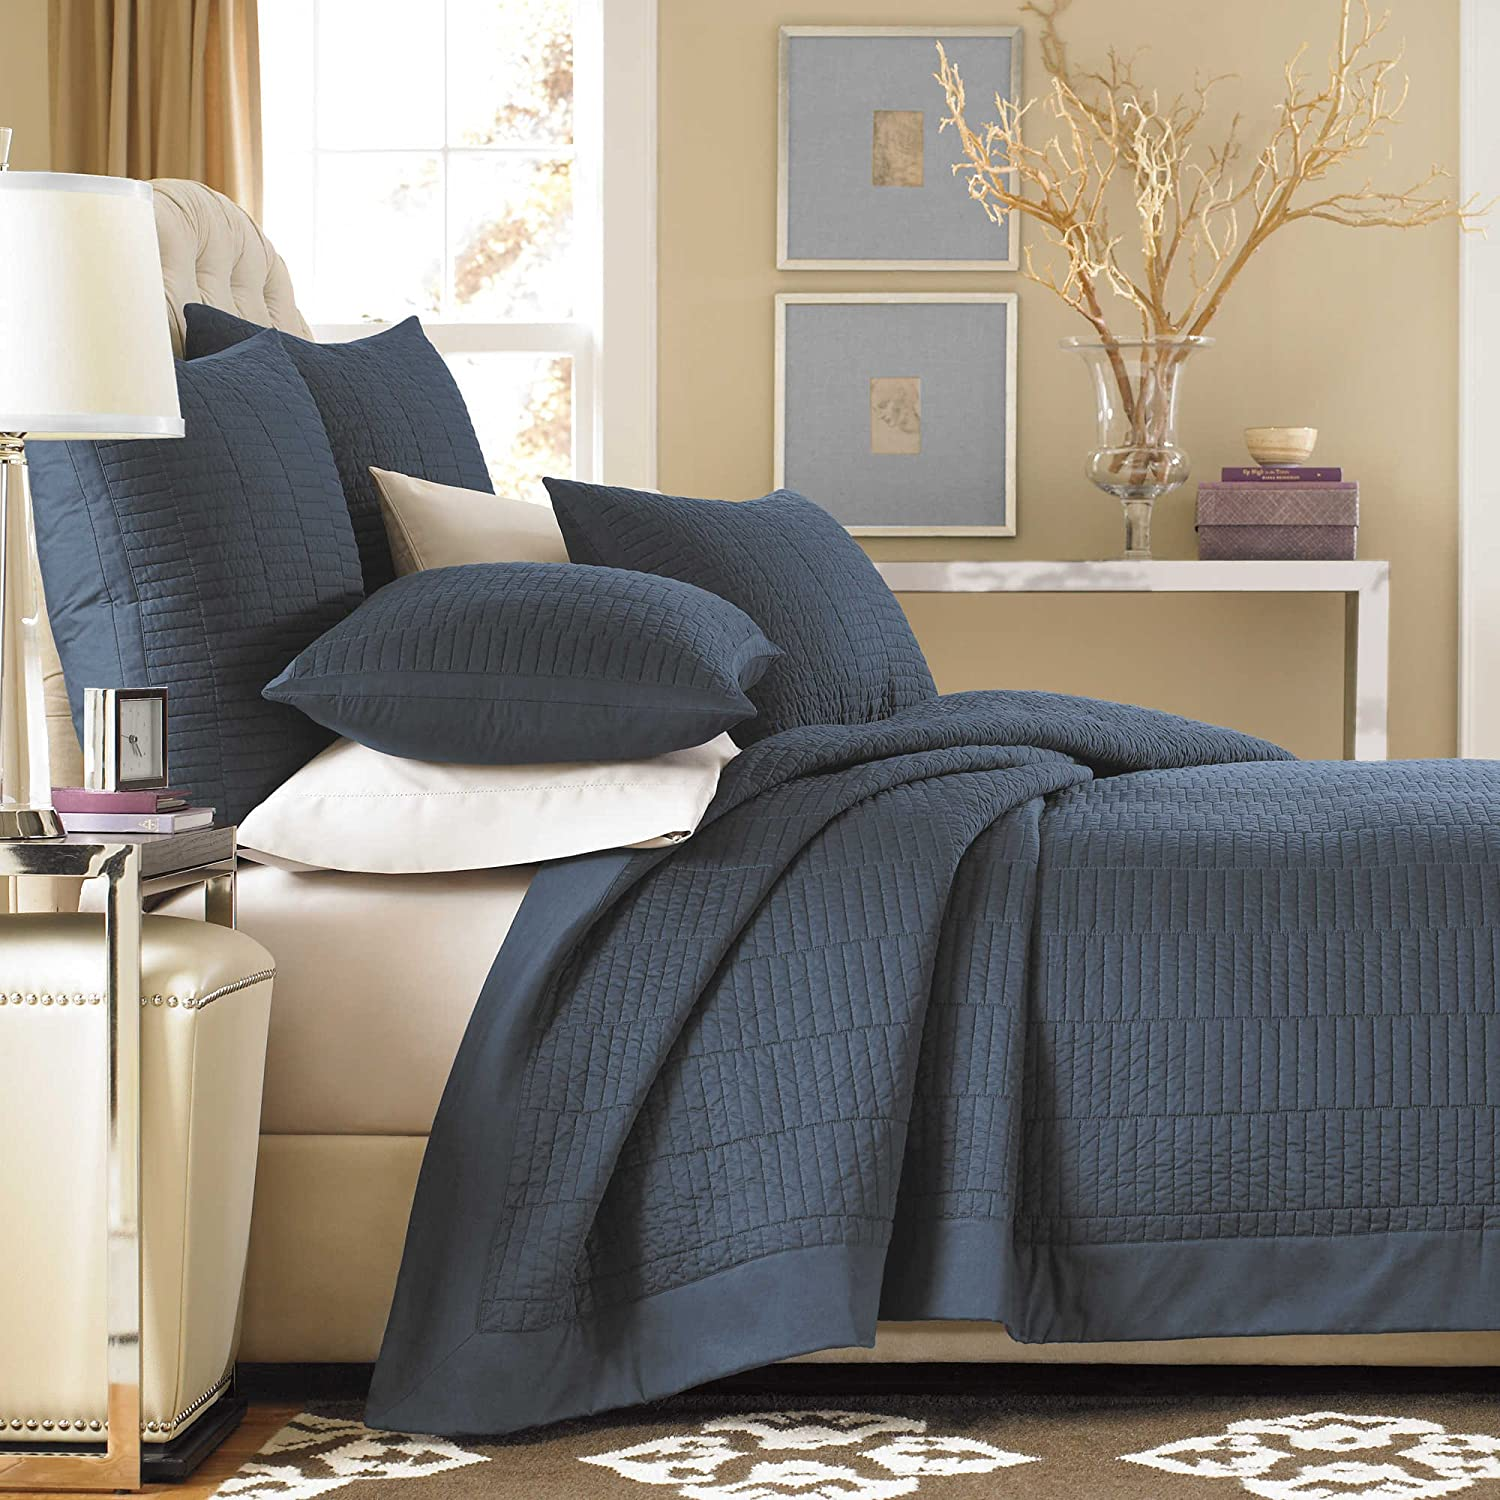 Real Simple European Pillow Sham from the Dune Bedding Collection in an Ink Color